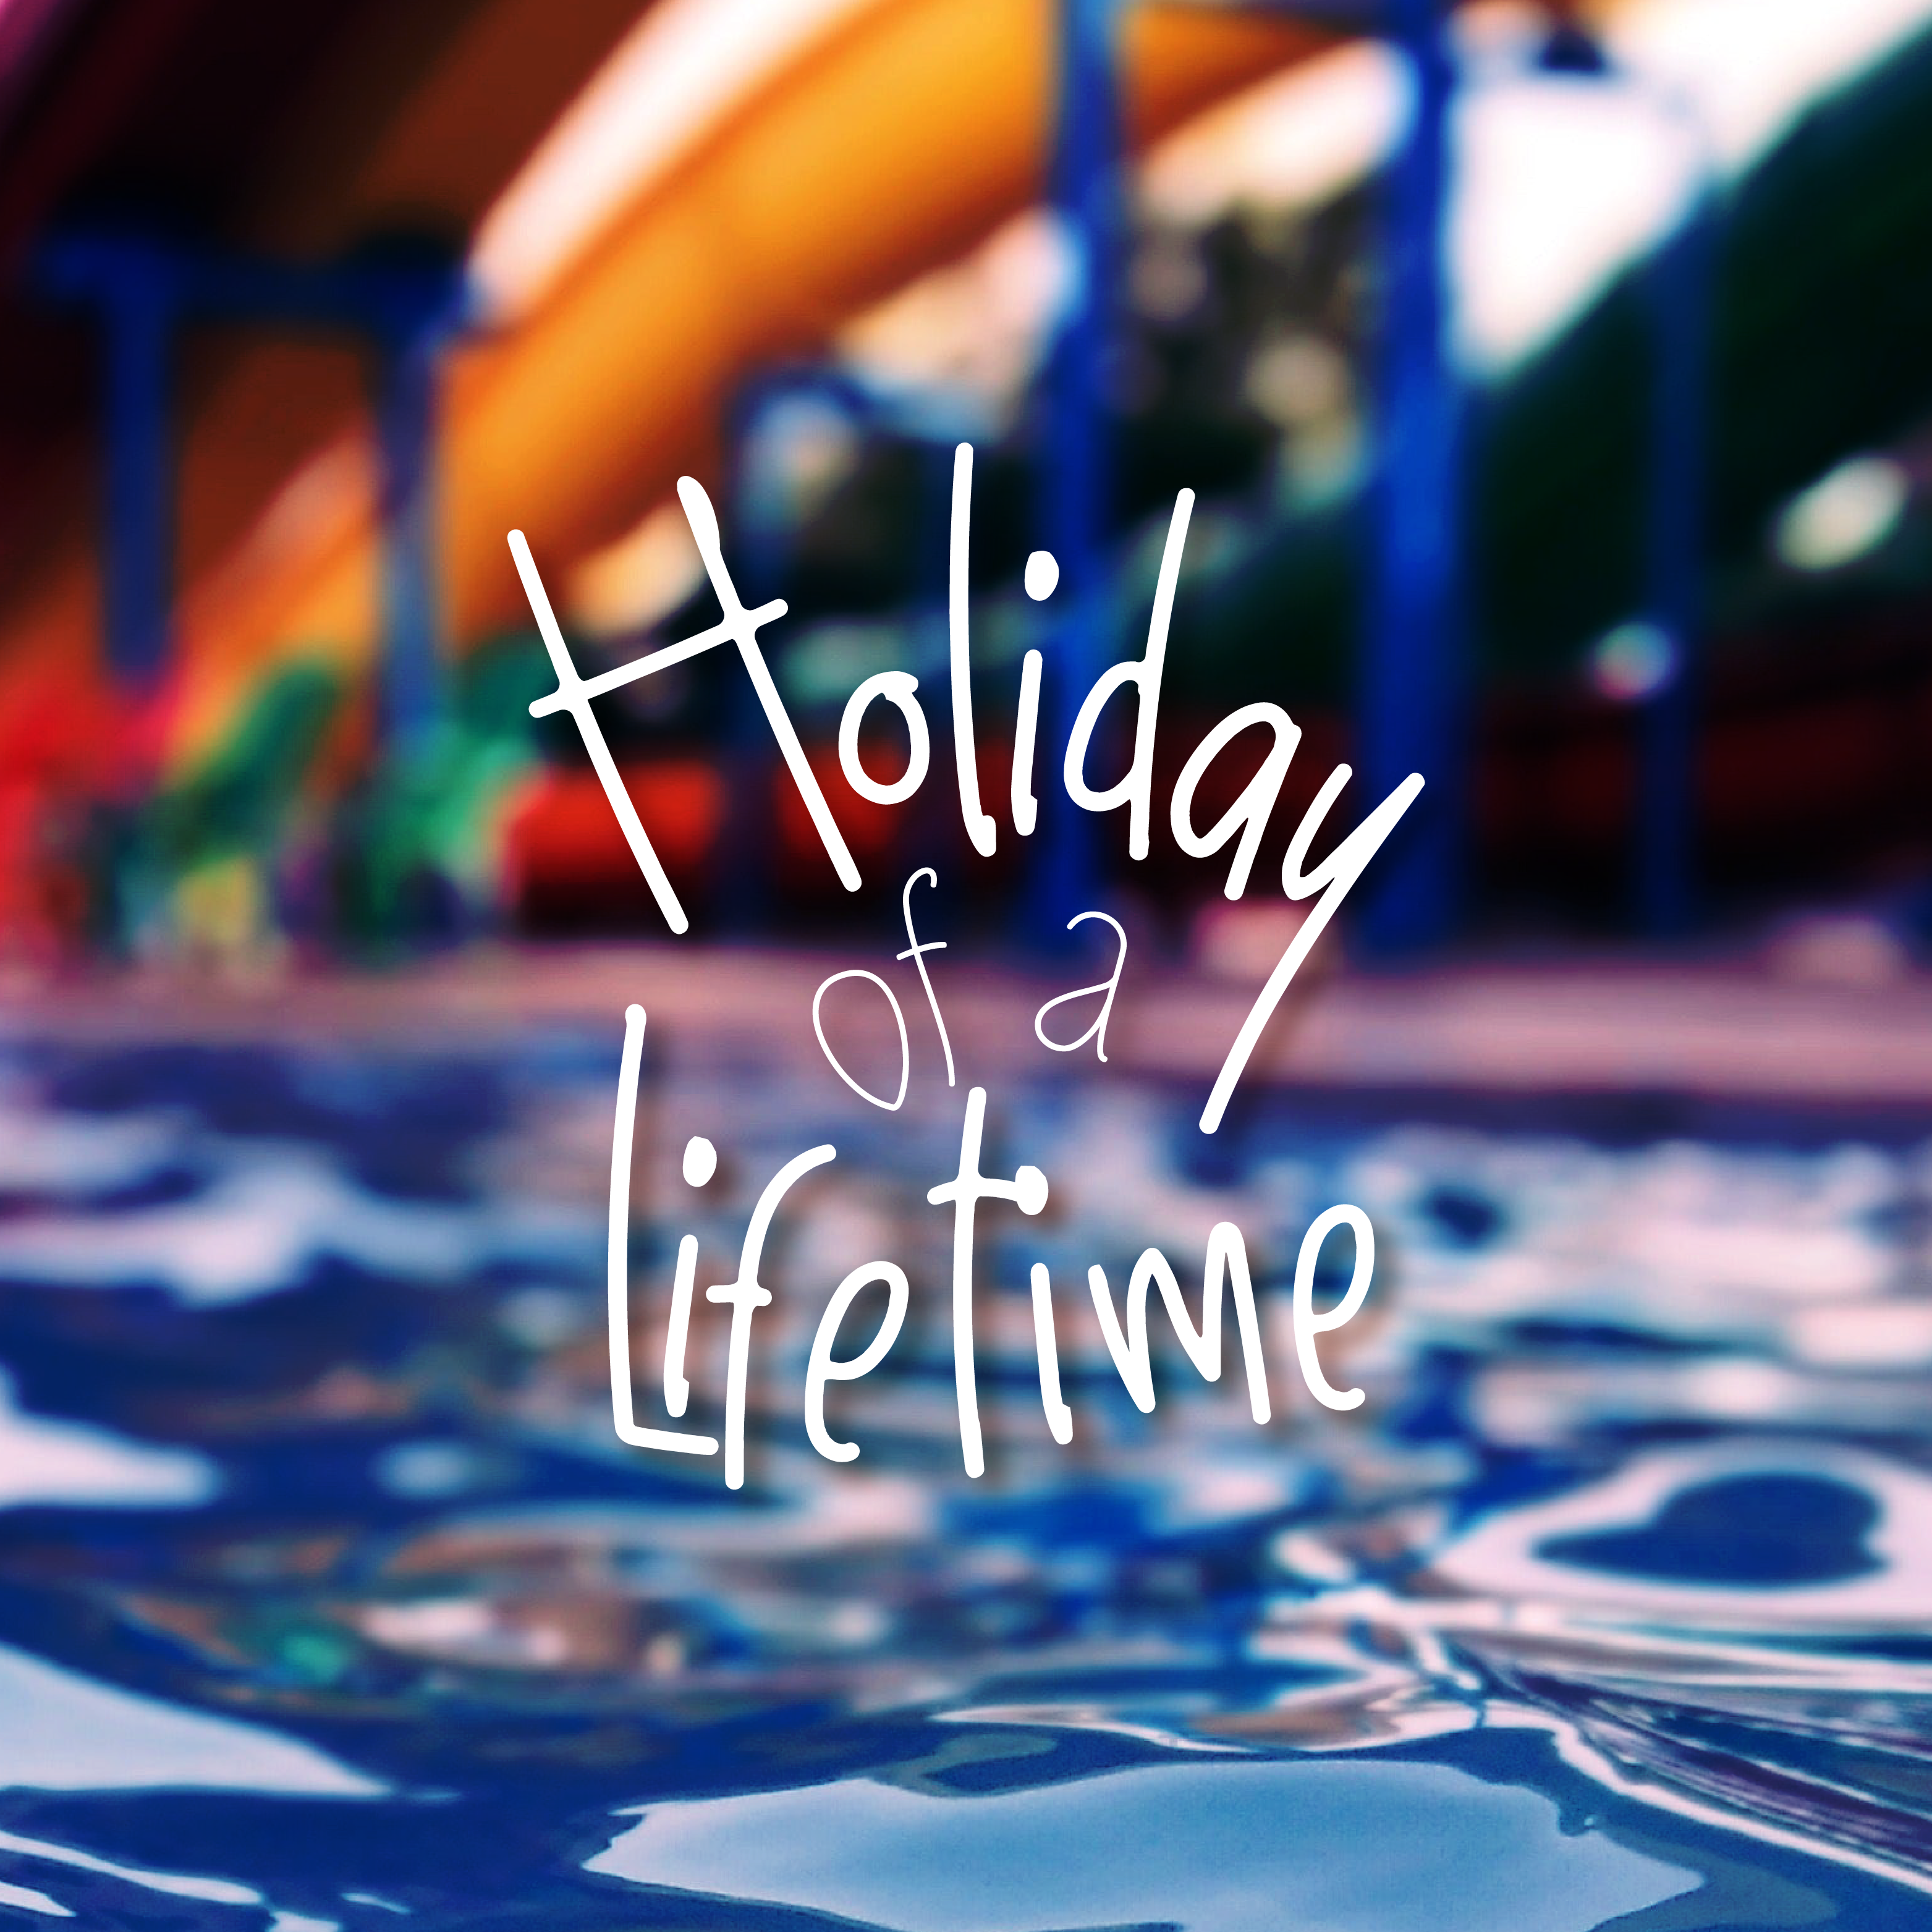 Holiday of a lifetime!